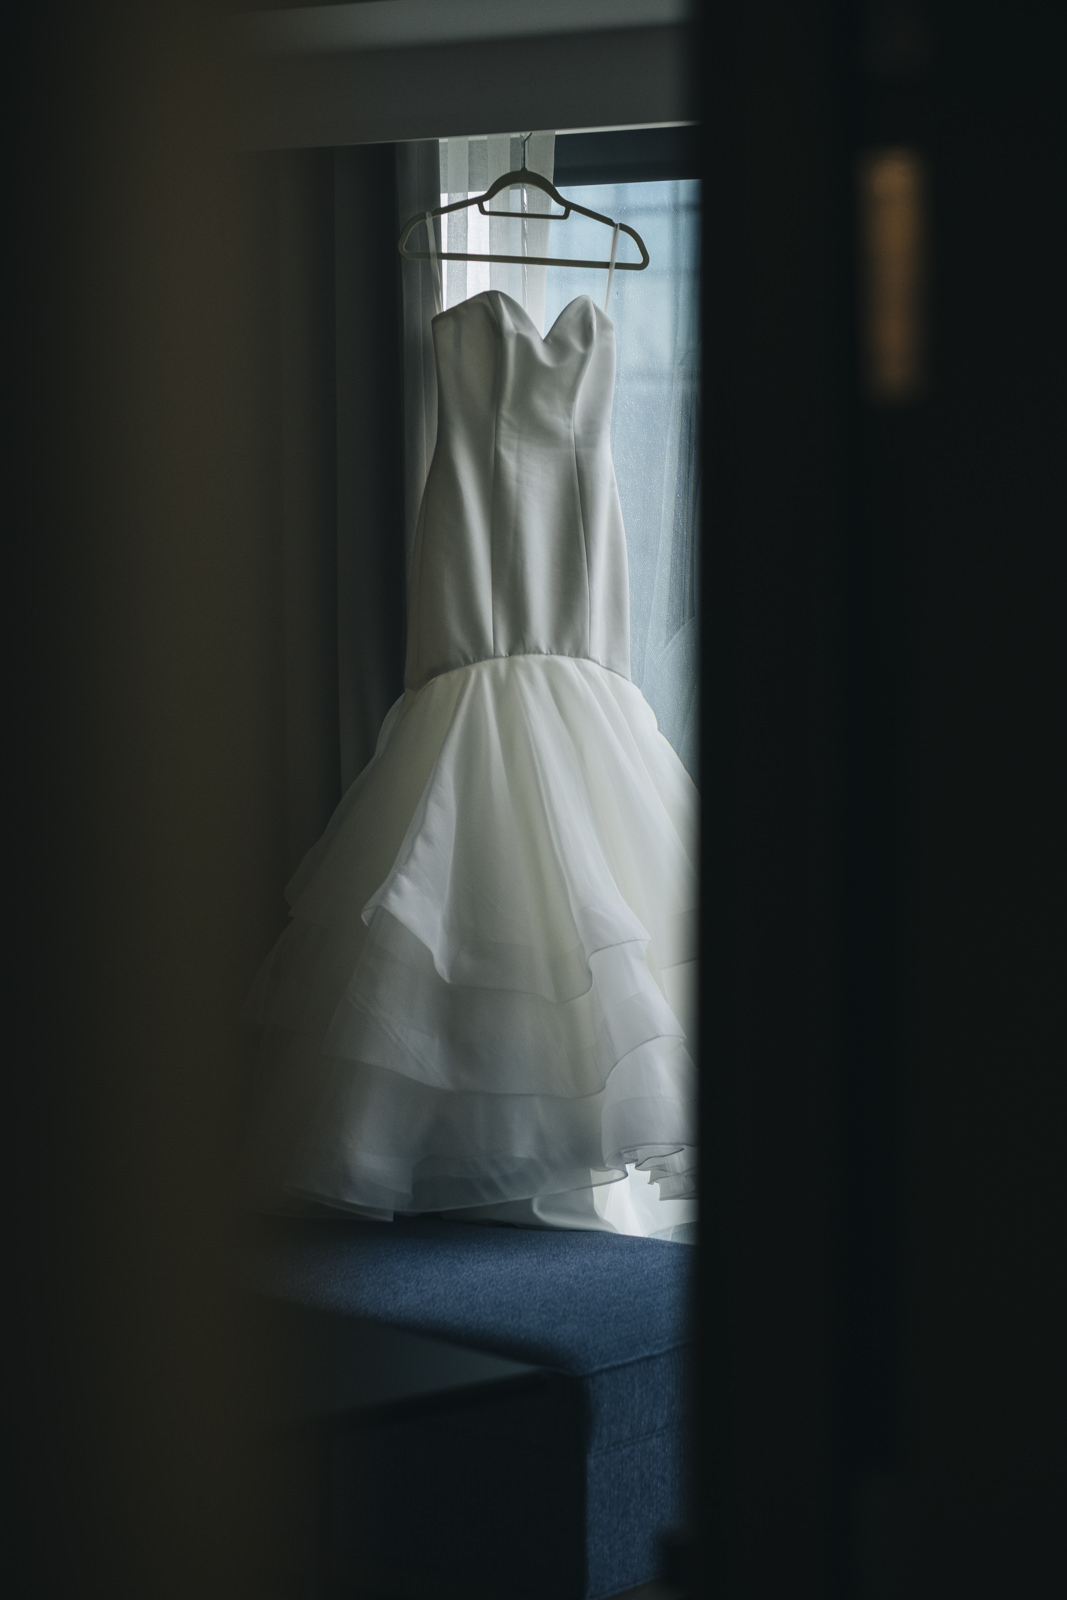 The bride's dress hangs in the window of her hotel suite in Toledo, Ohio.